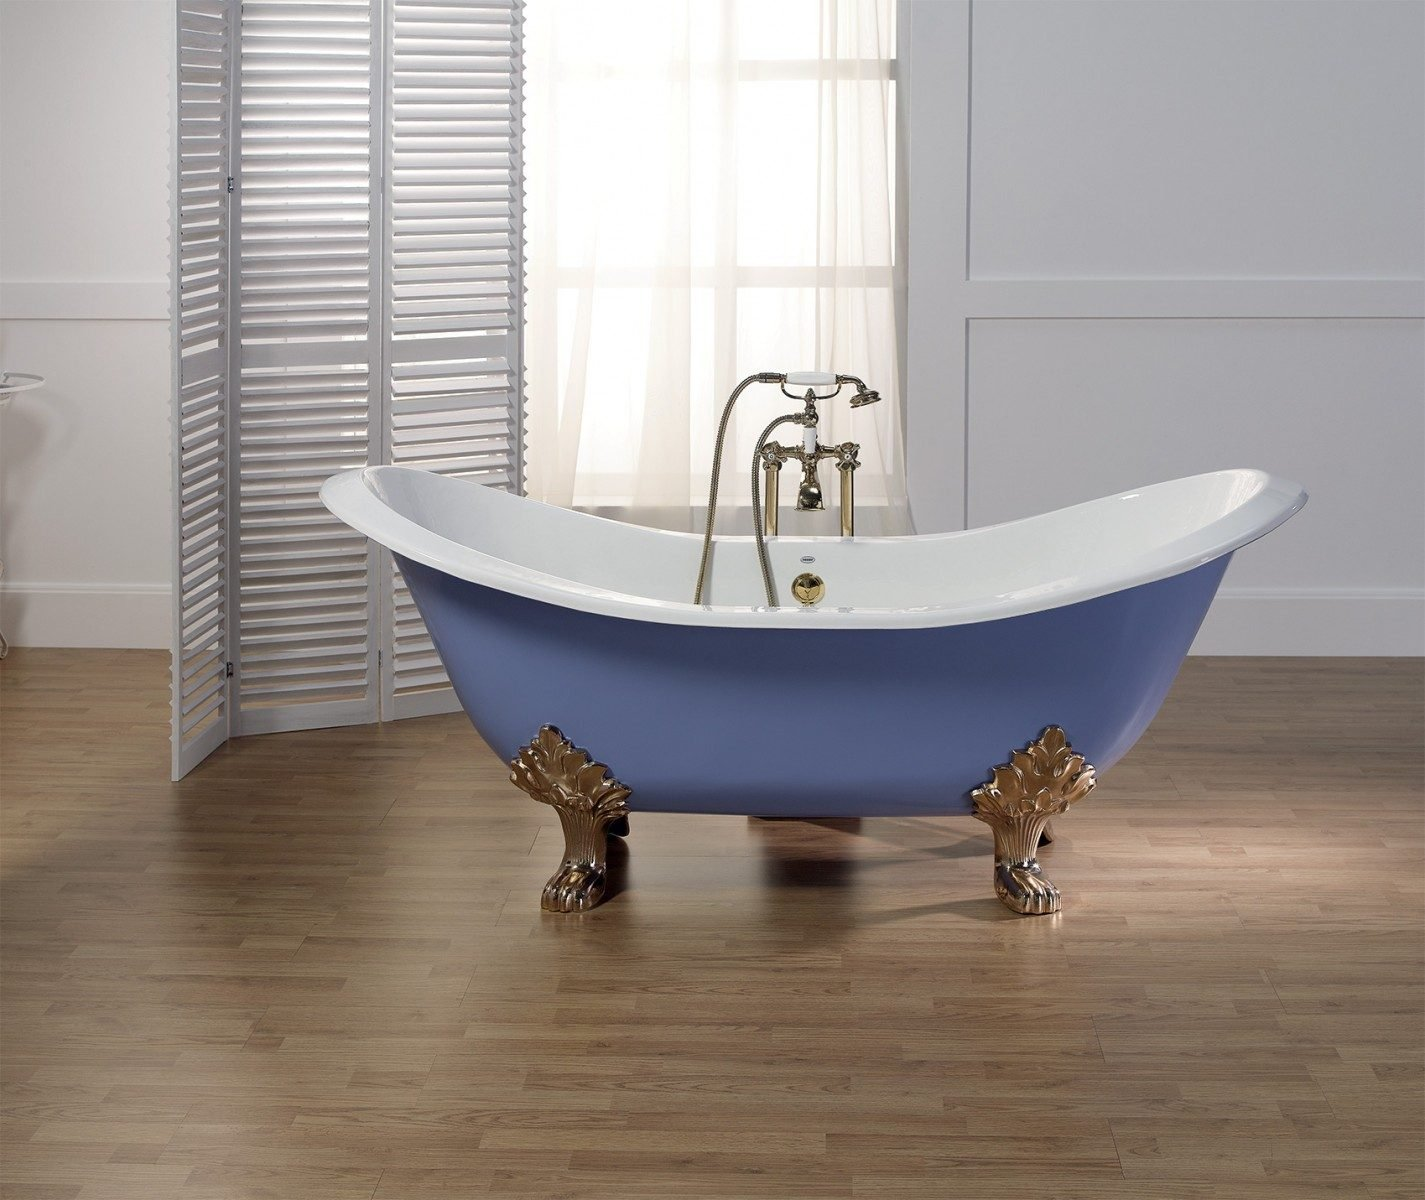 REGENCY Cast Iron Footed Bath - With Lion Feet - Cheviot Products